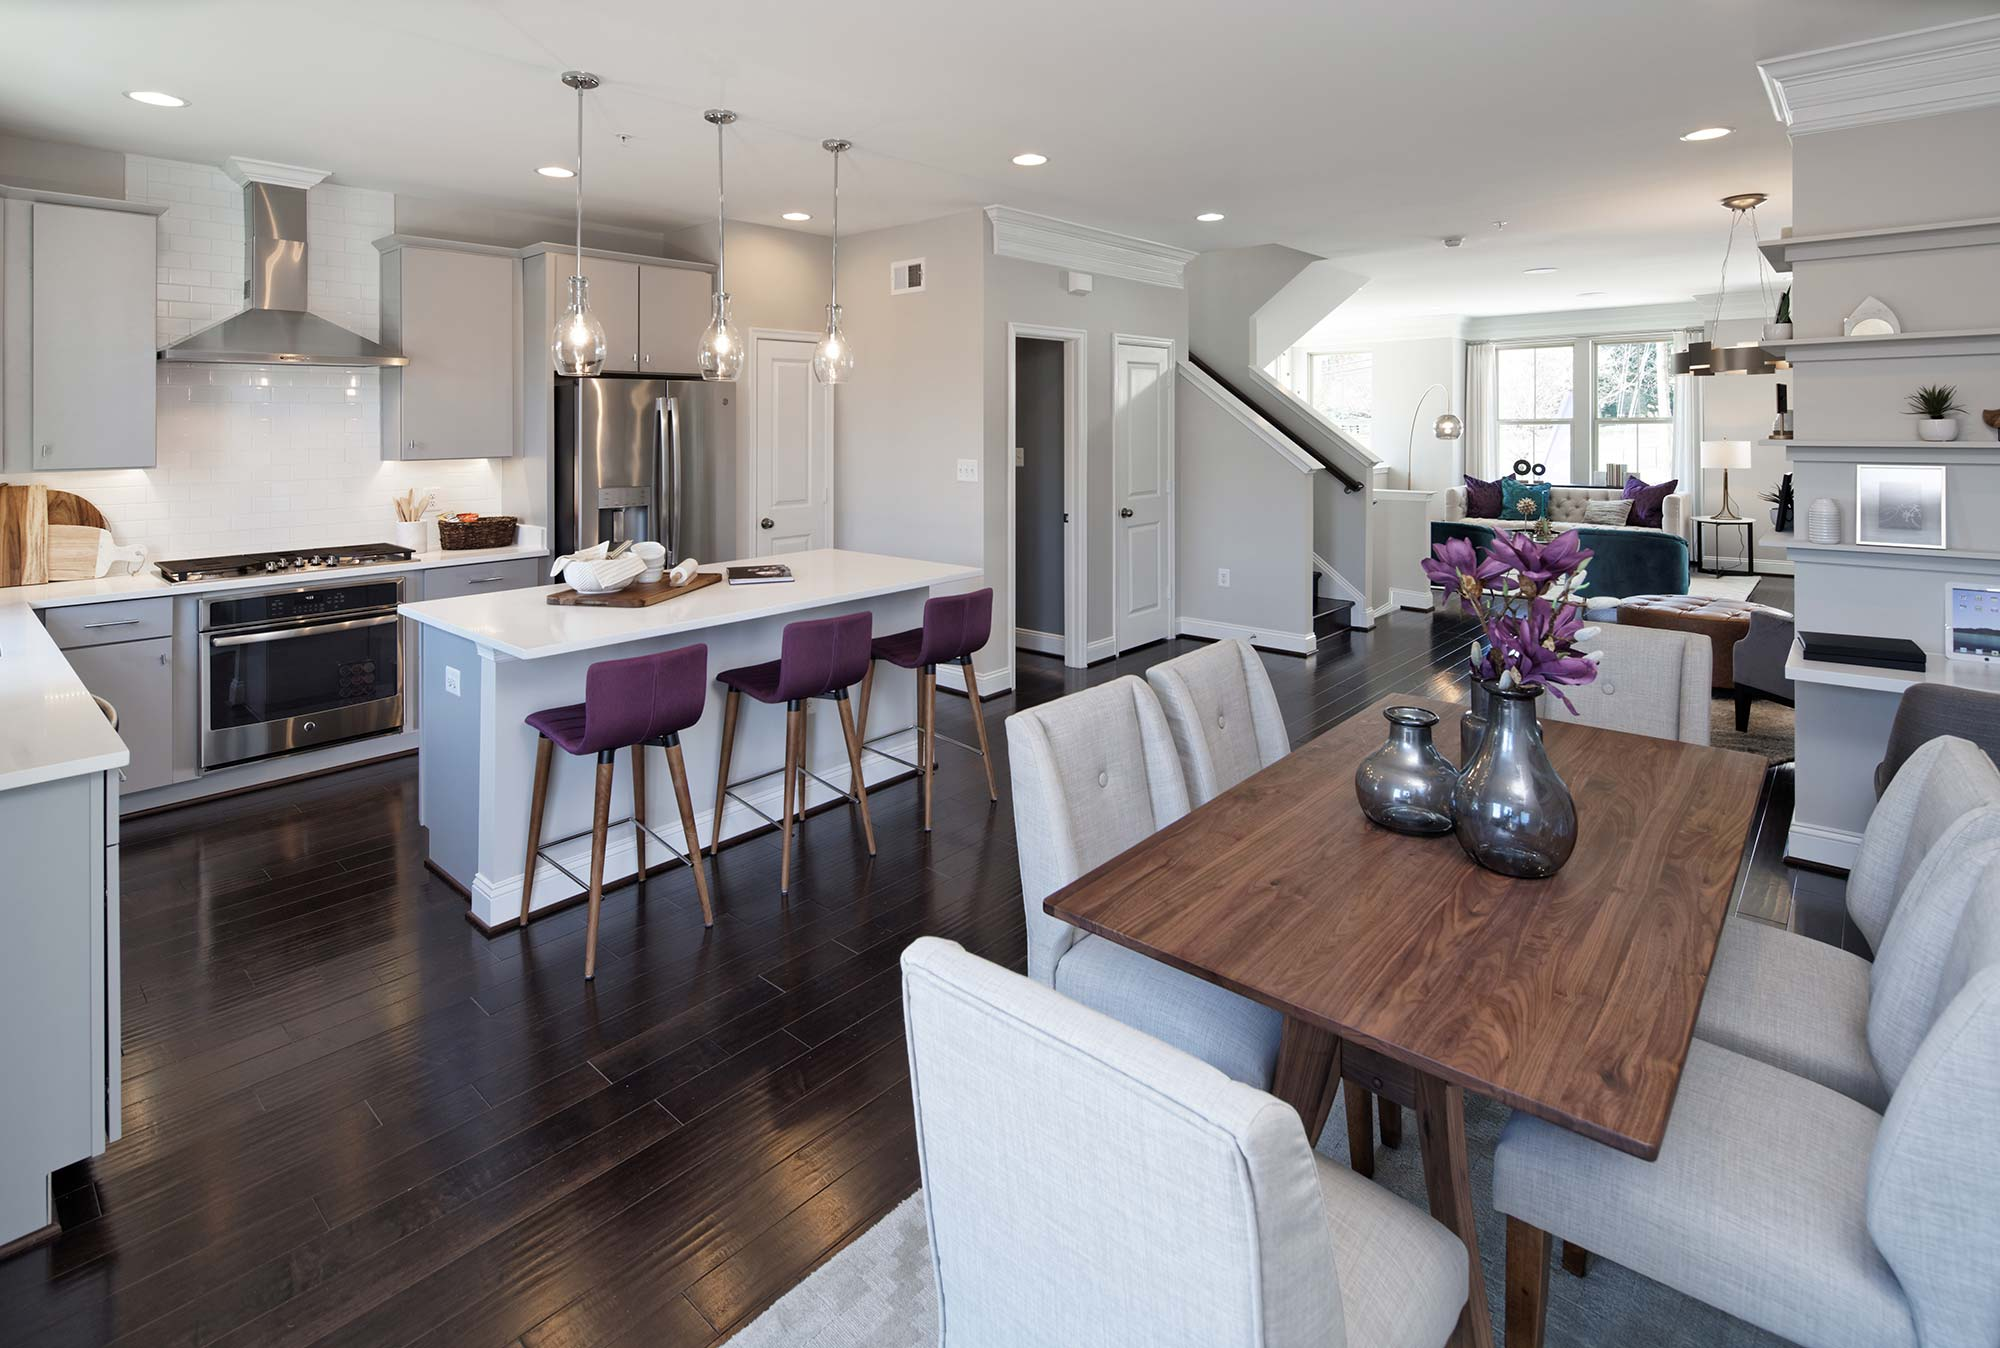 Kitchen & Dining Space, Townhomes, Germantown MD